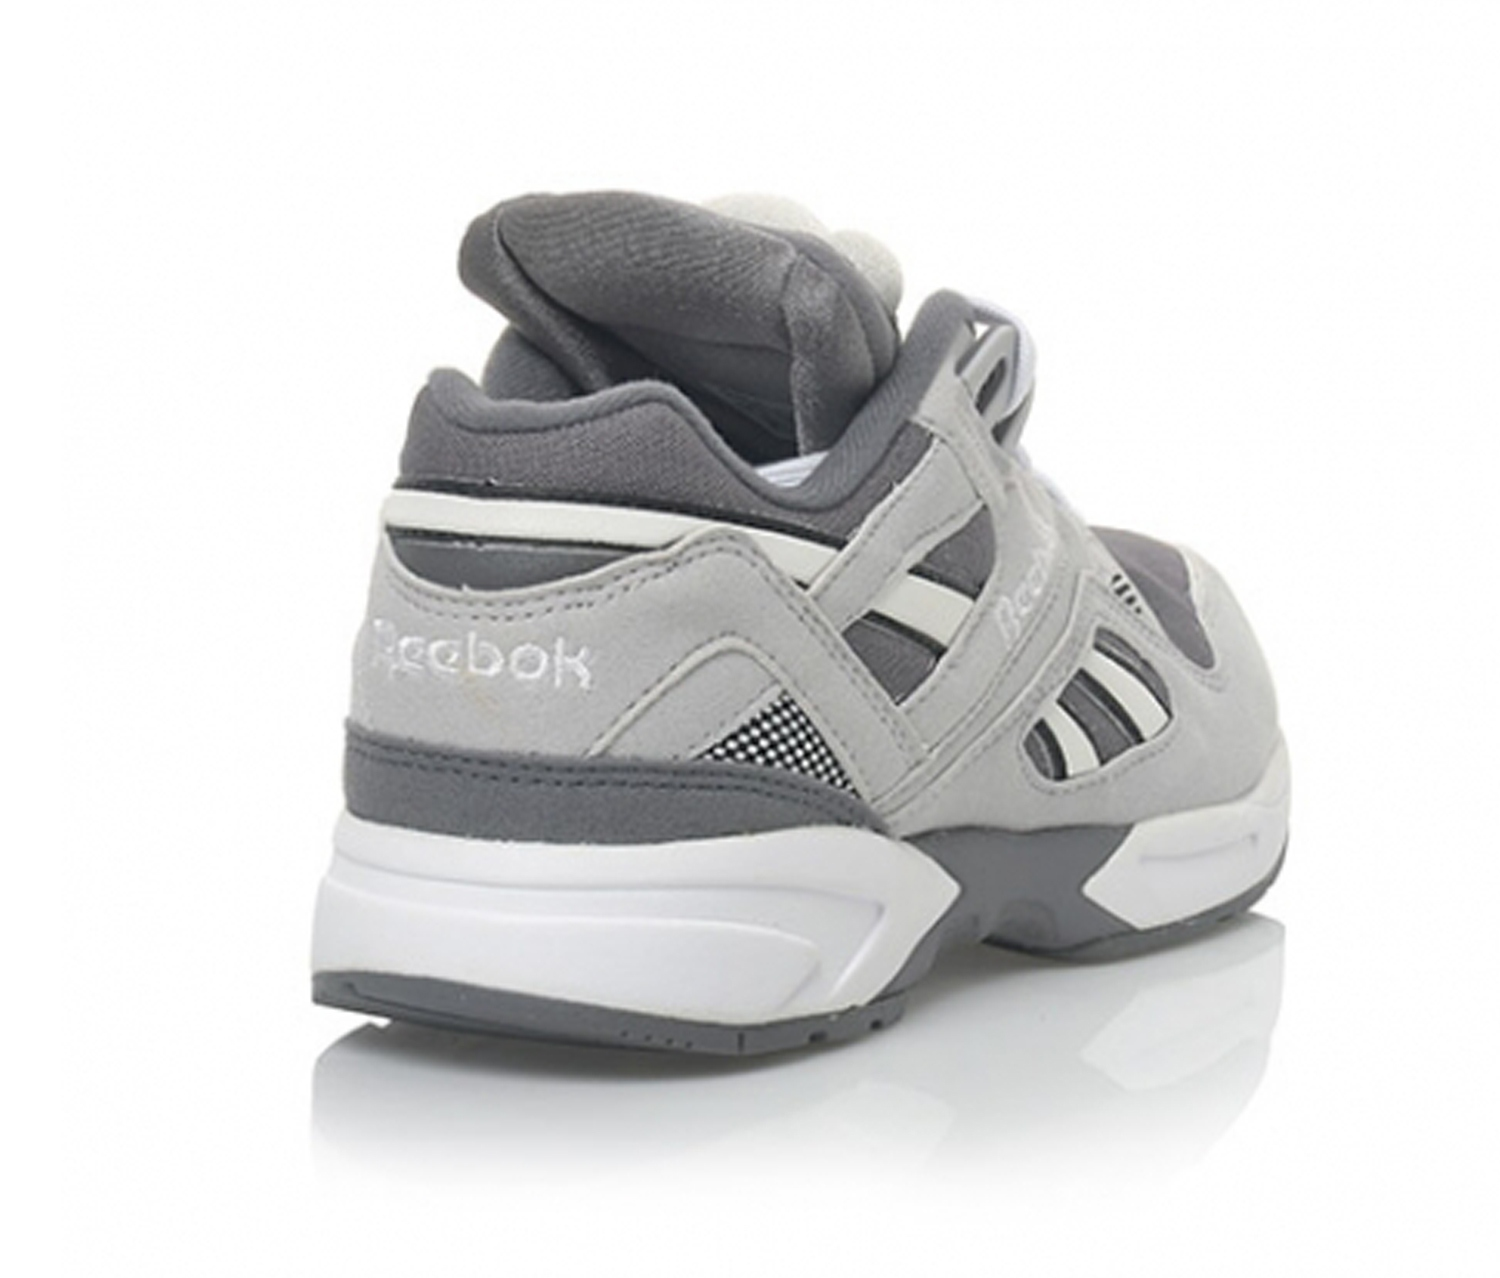 reebok shoes for kids blue and white seersucker clutches